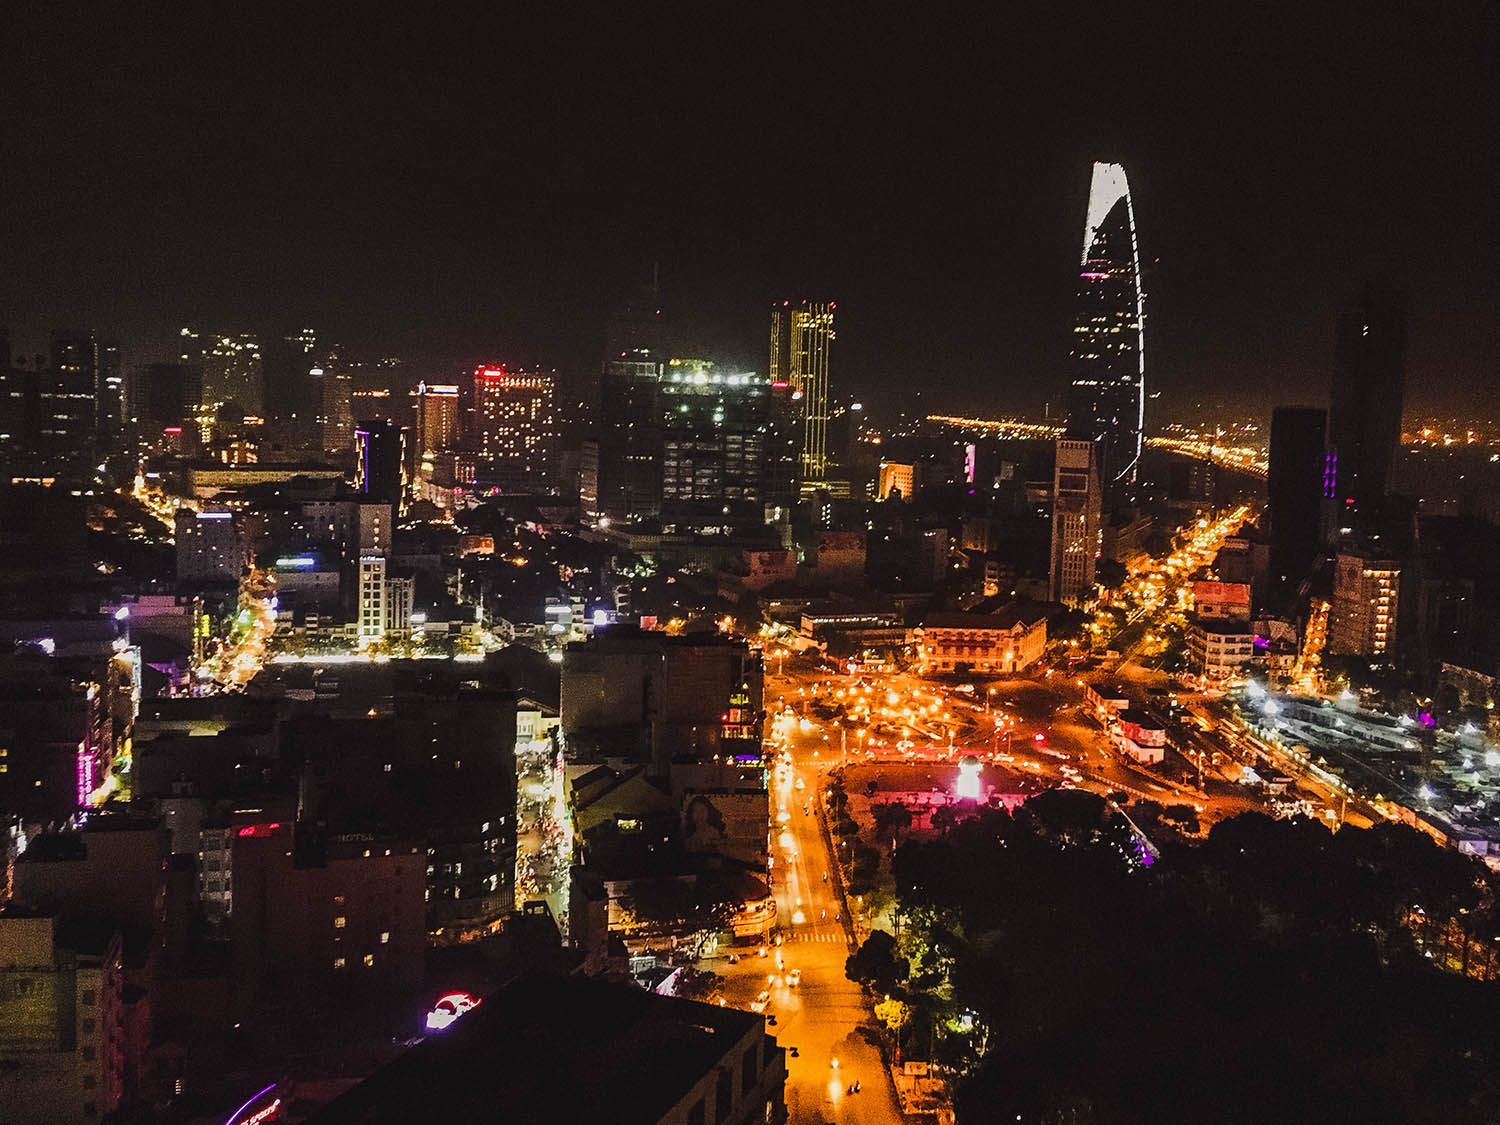 Ho Chi Minh City at night.